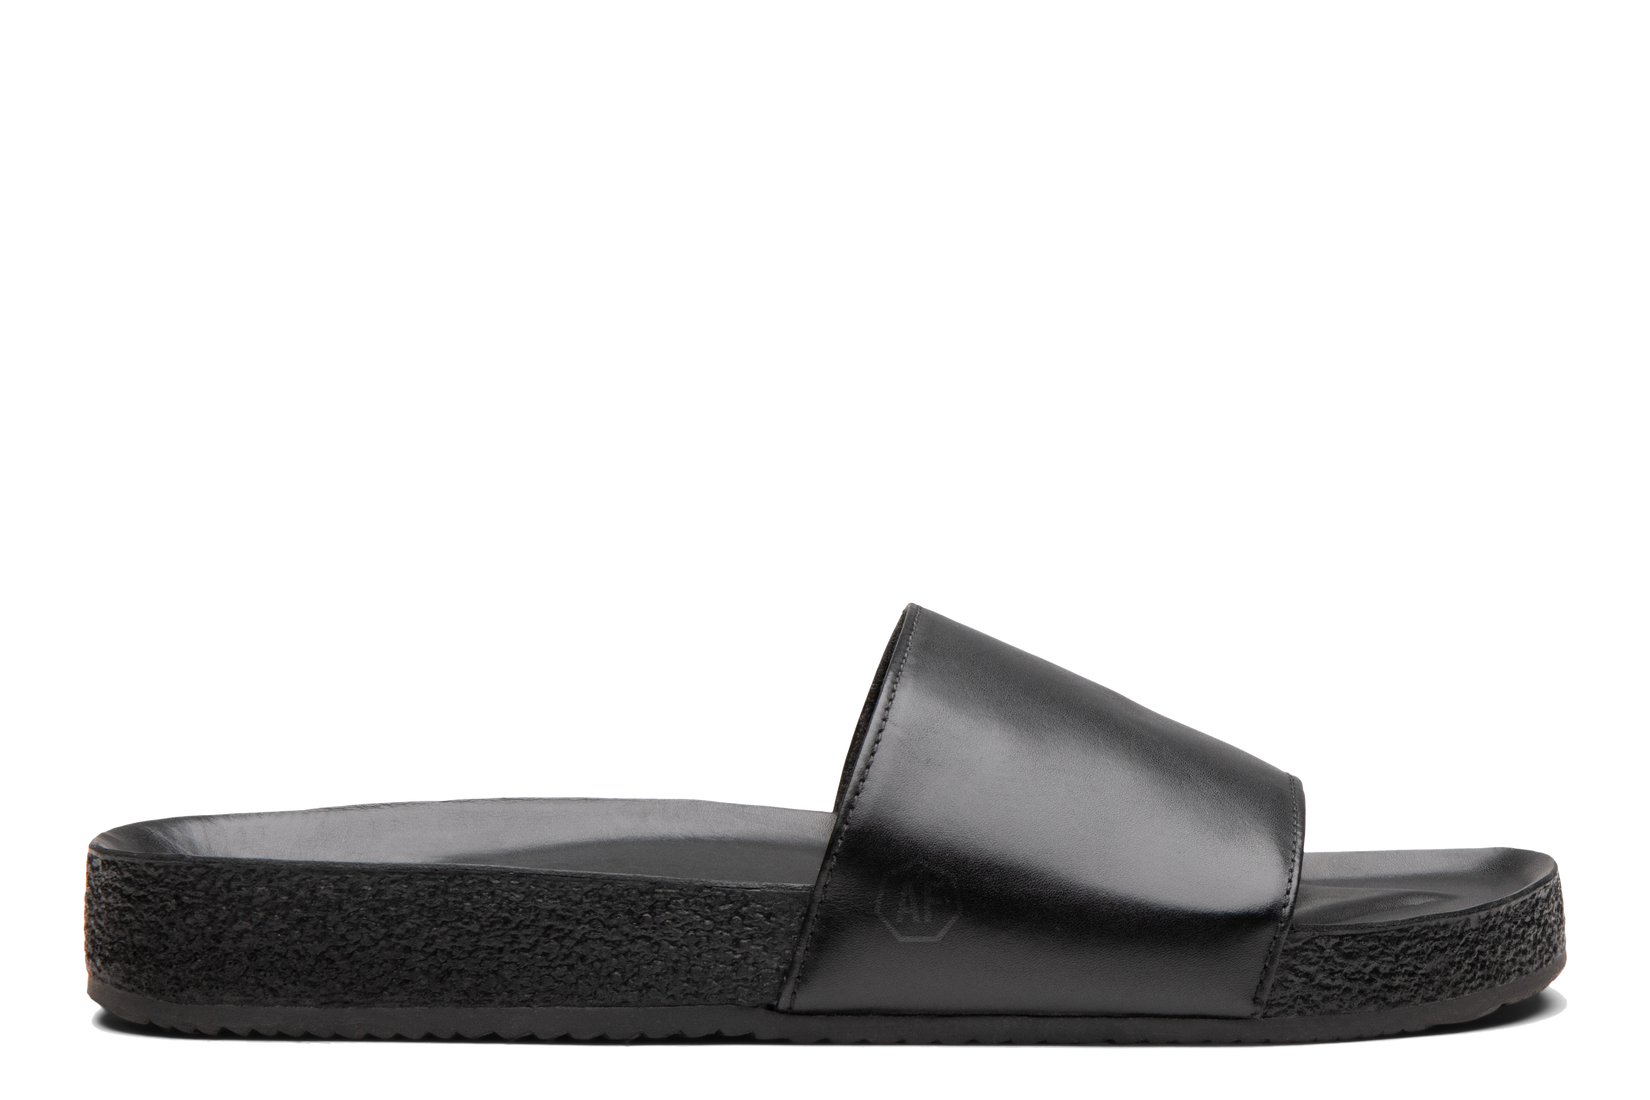 Slide Sandal in Black (FINAL SALE)